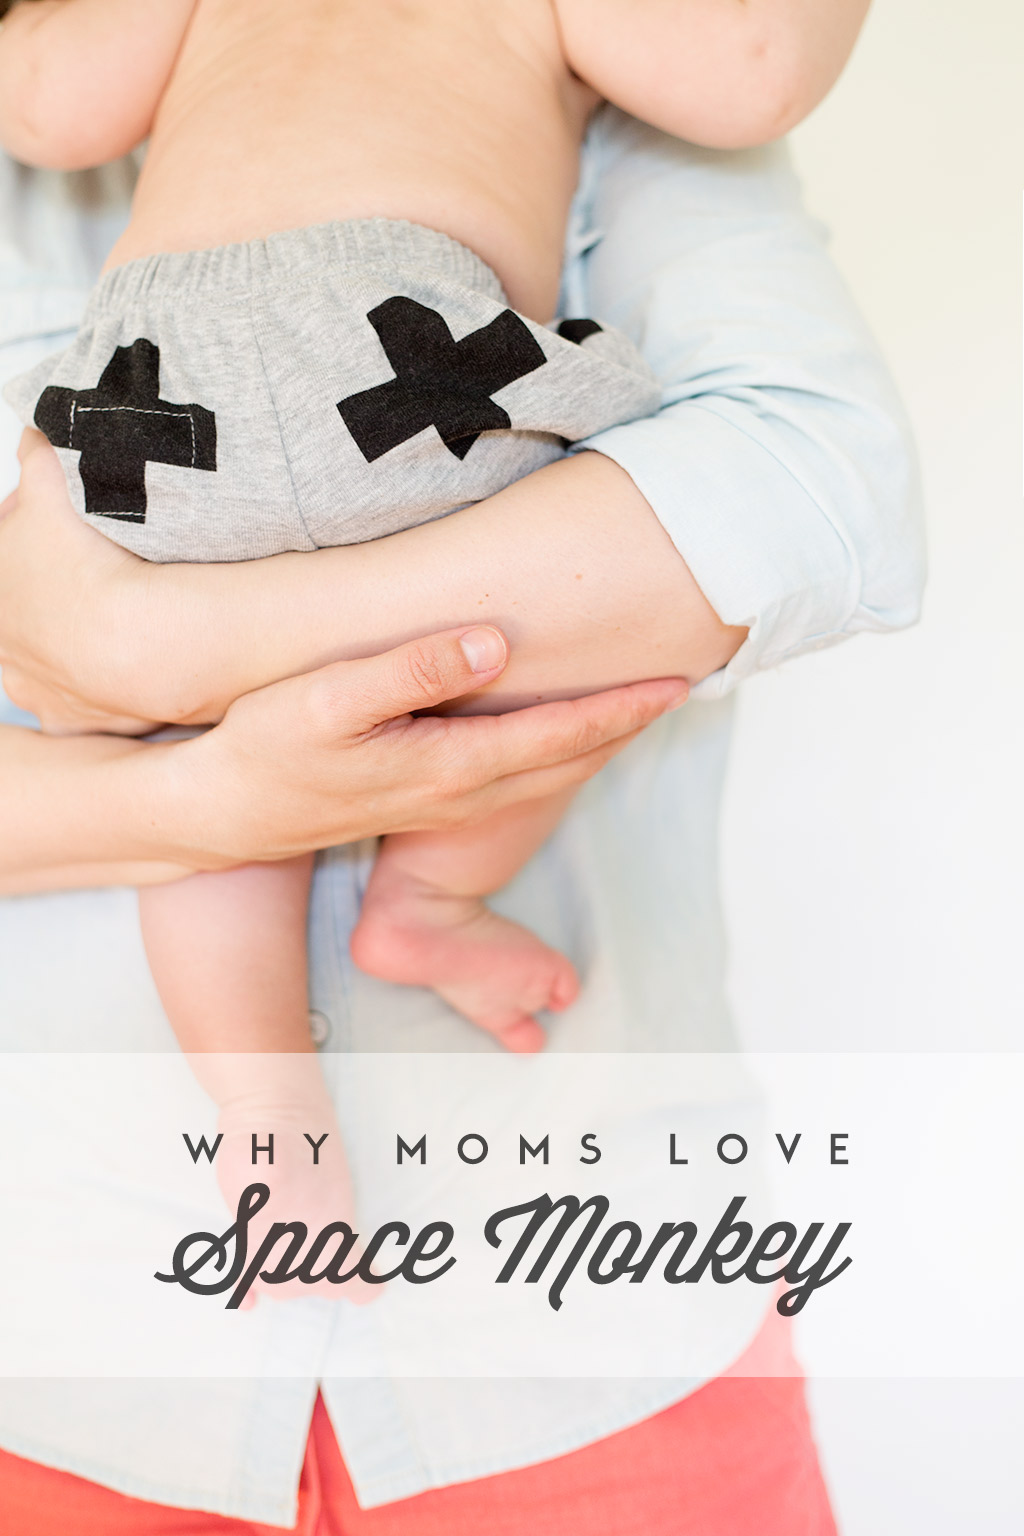 Why Moms love Space Monkey